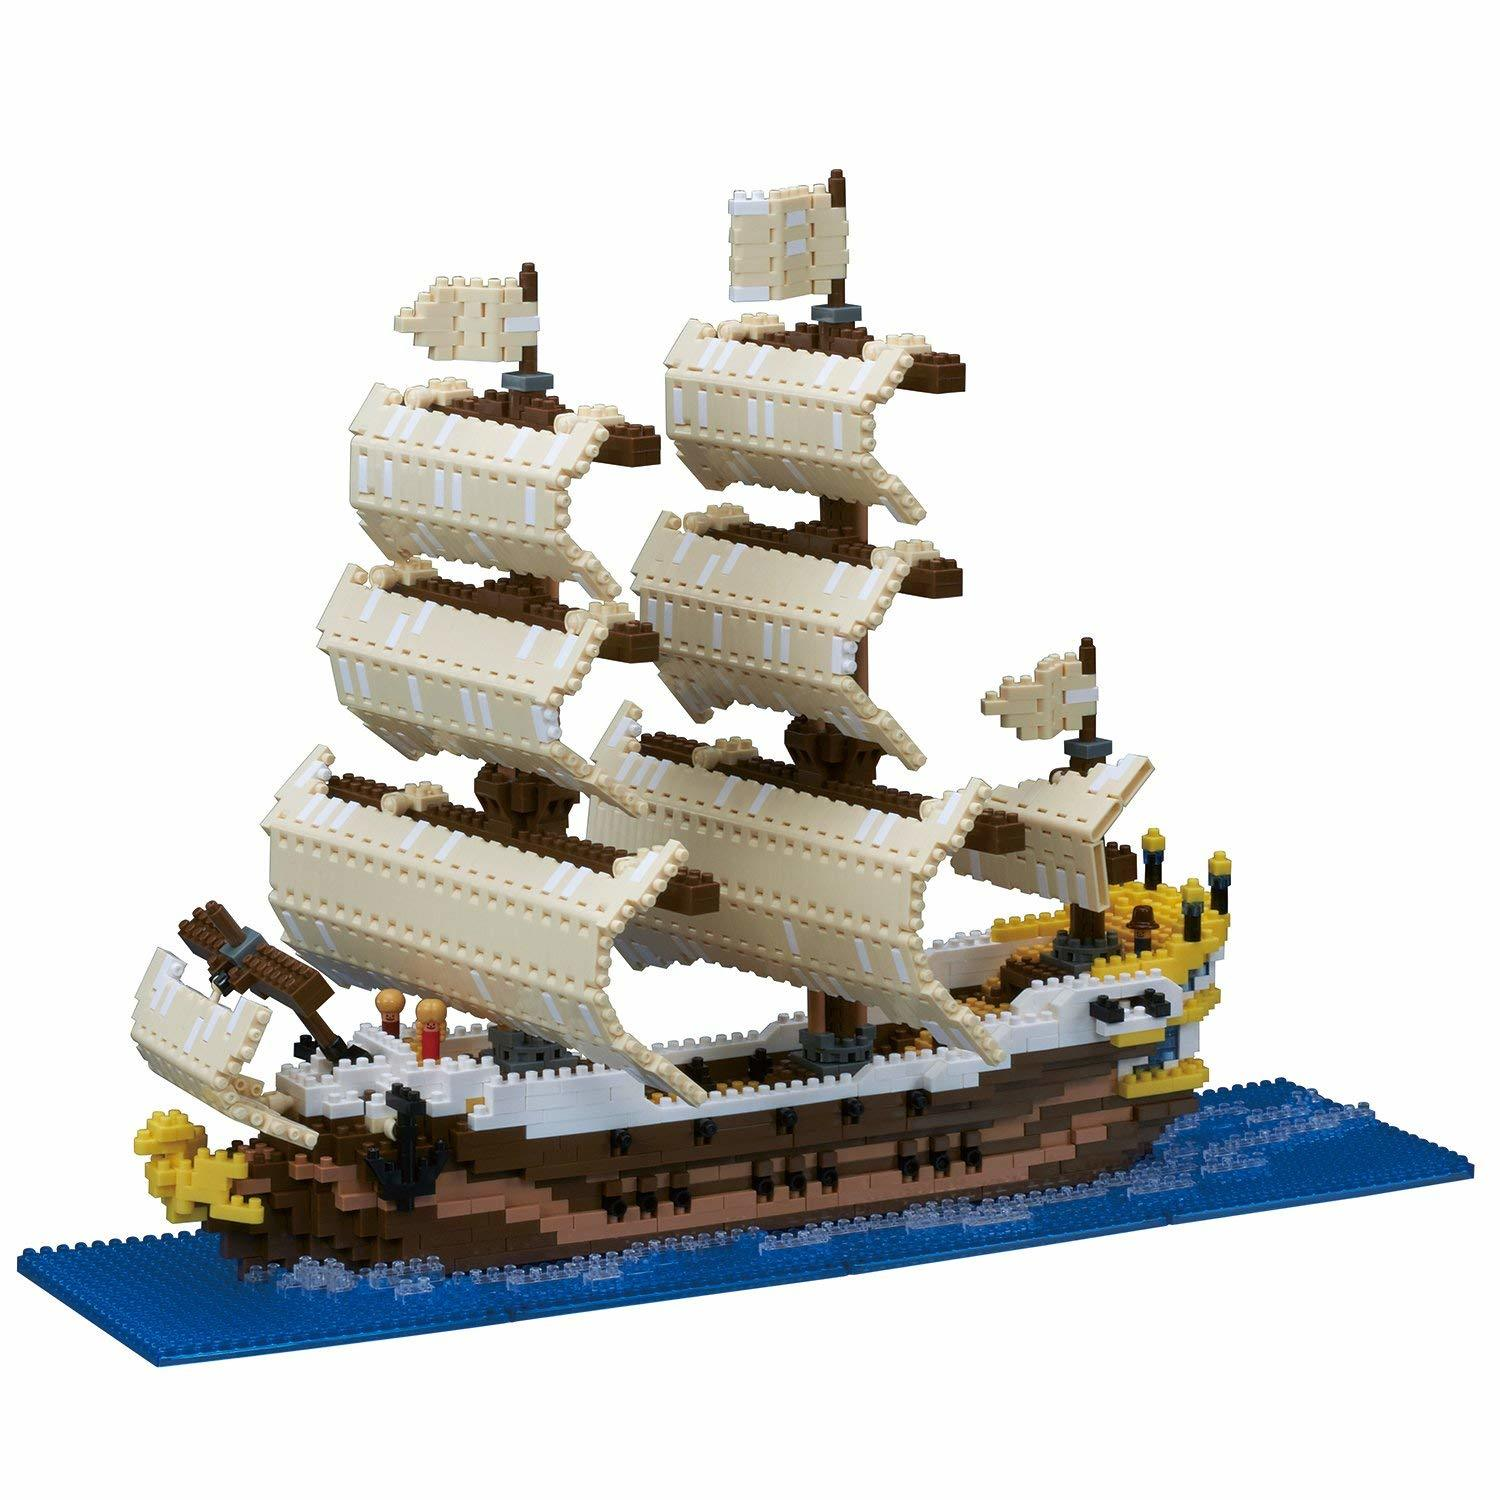 nanoblock: Free-Build Series - Deluxe Sailing Ship image